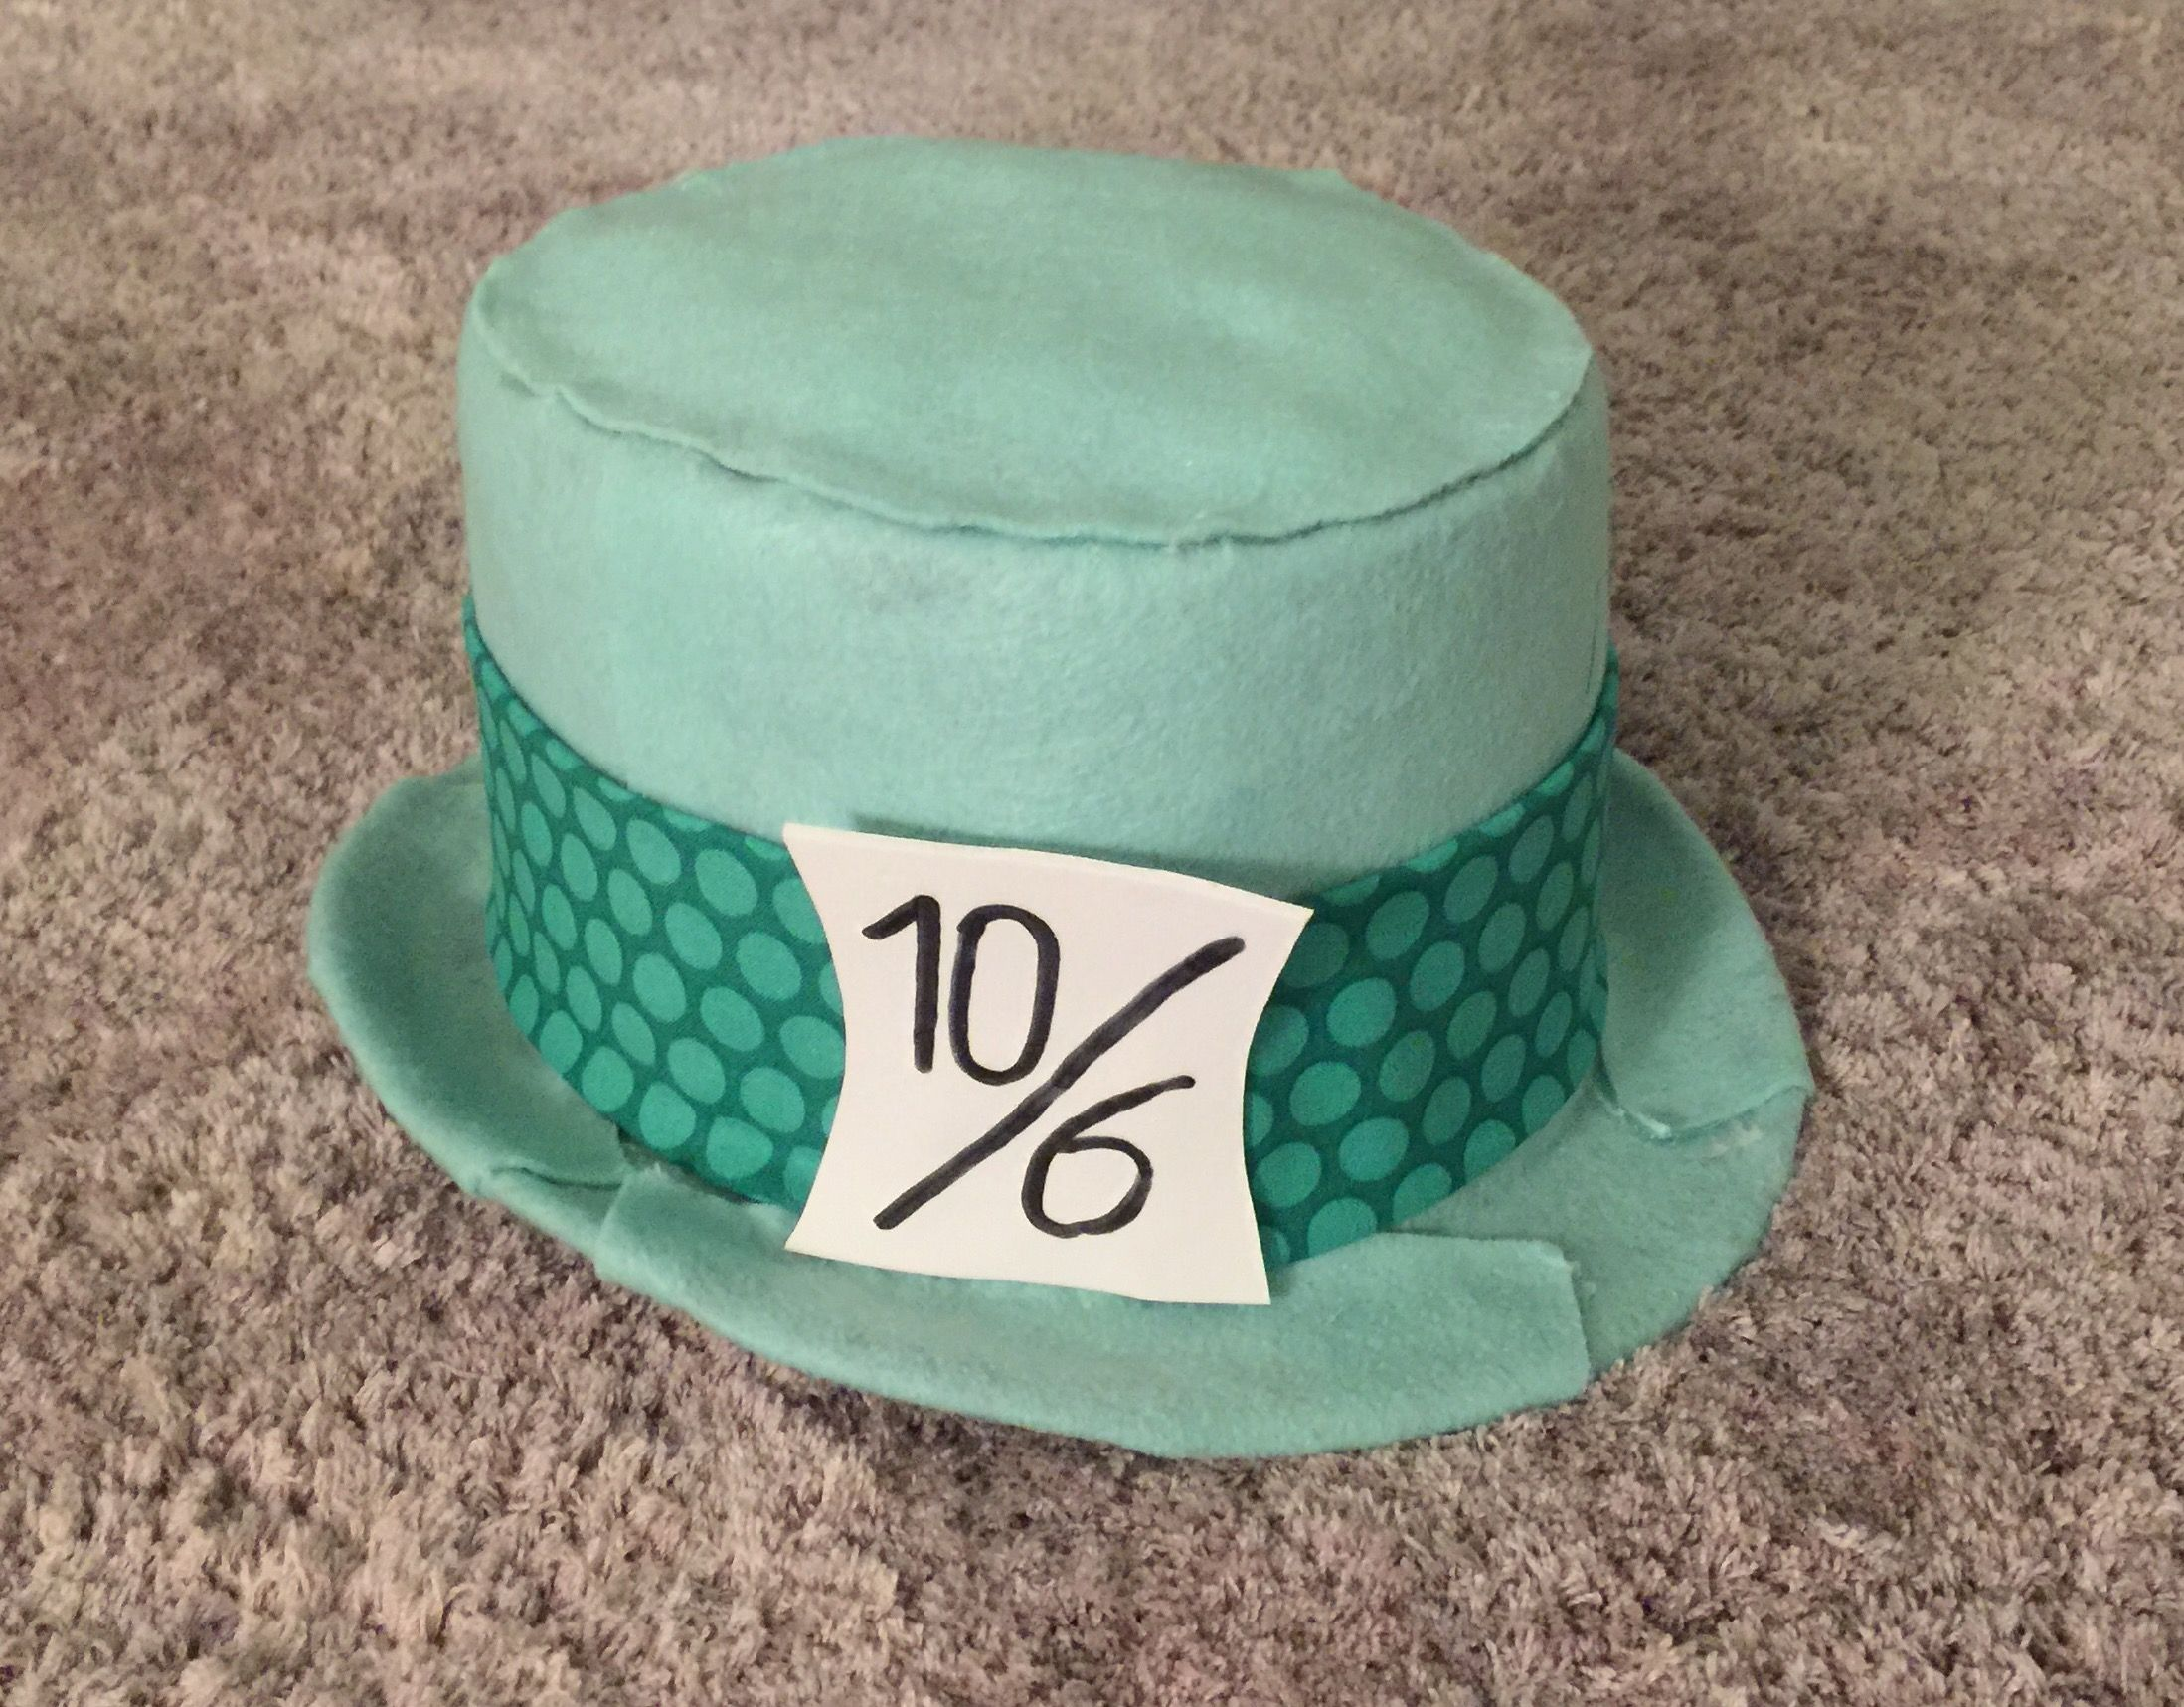 My attempt at a Mad Hatter Hat 1951 version I used the Disney Mickey ears groom hat, took off the ears and used a mint green felt and found some interesting fabric for the band then used styrofoam for the 10/6 tag Ears can be kept or removed